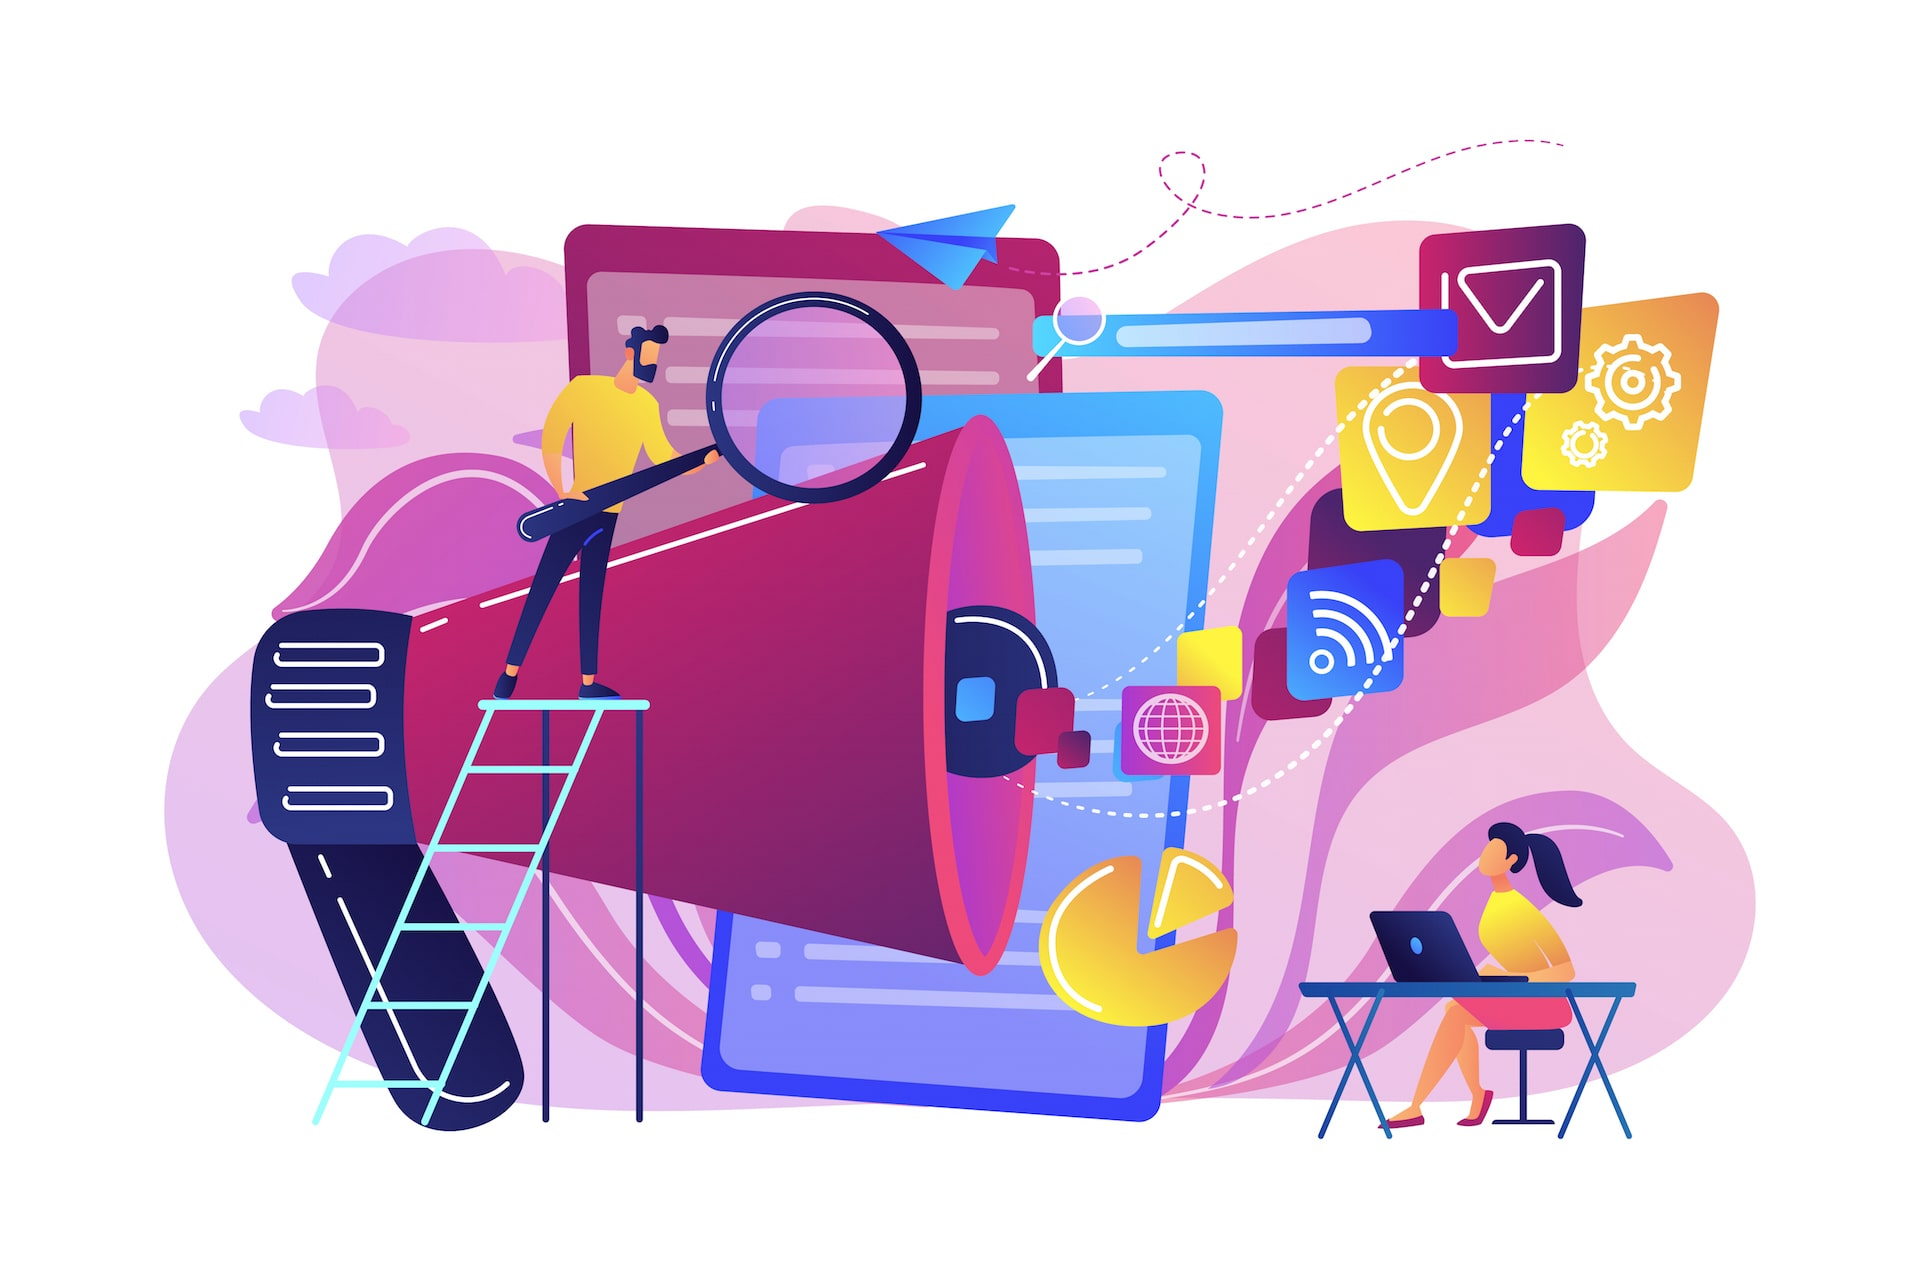 seo tutorial, SEO Tutorial: All You Need to Know in 2021 [Insights & Trends]  SEO Tutorial: All You Need to Know in 2021 [Insights & Trends] content promotion